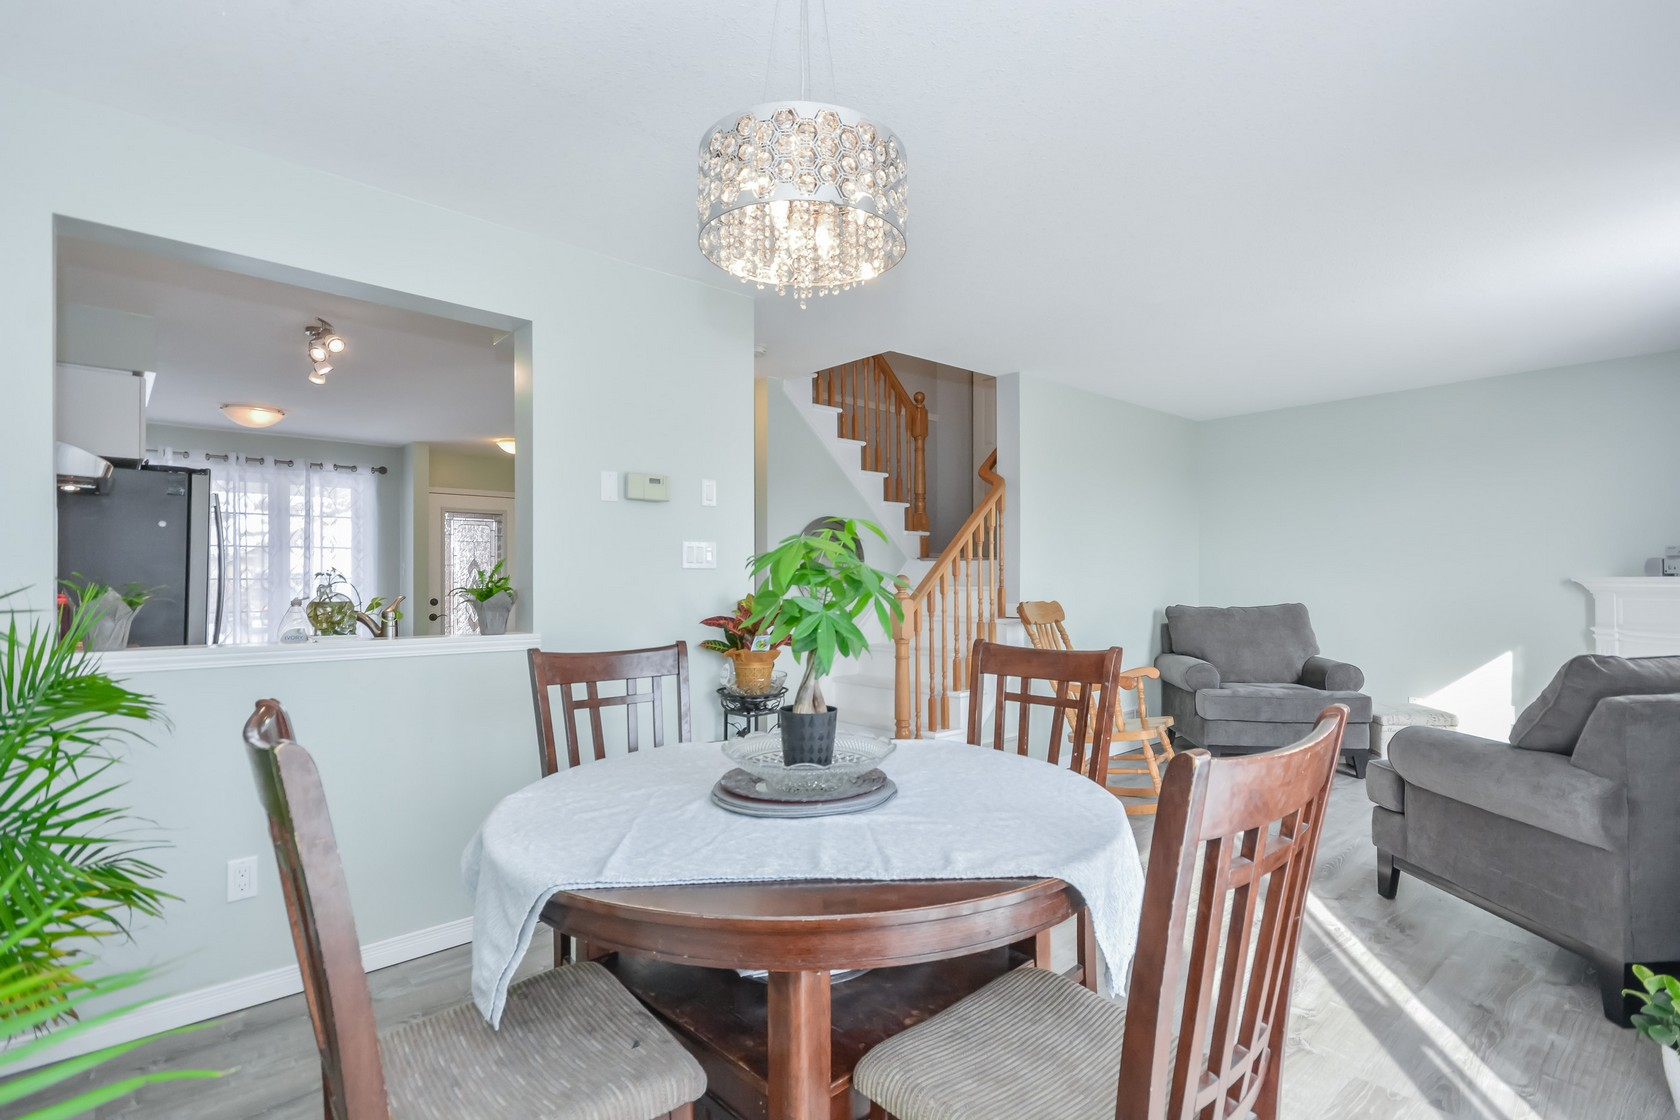 23 Valleyhaven Lane, Guelph